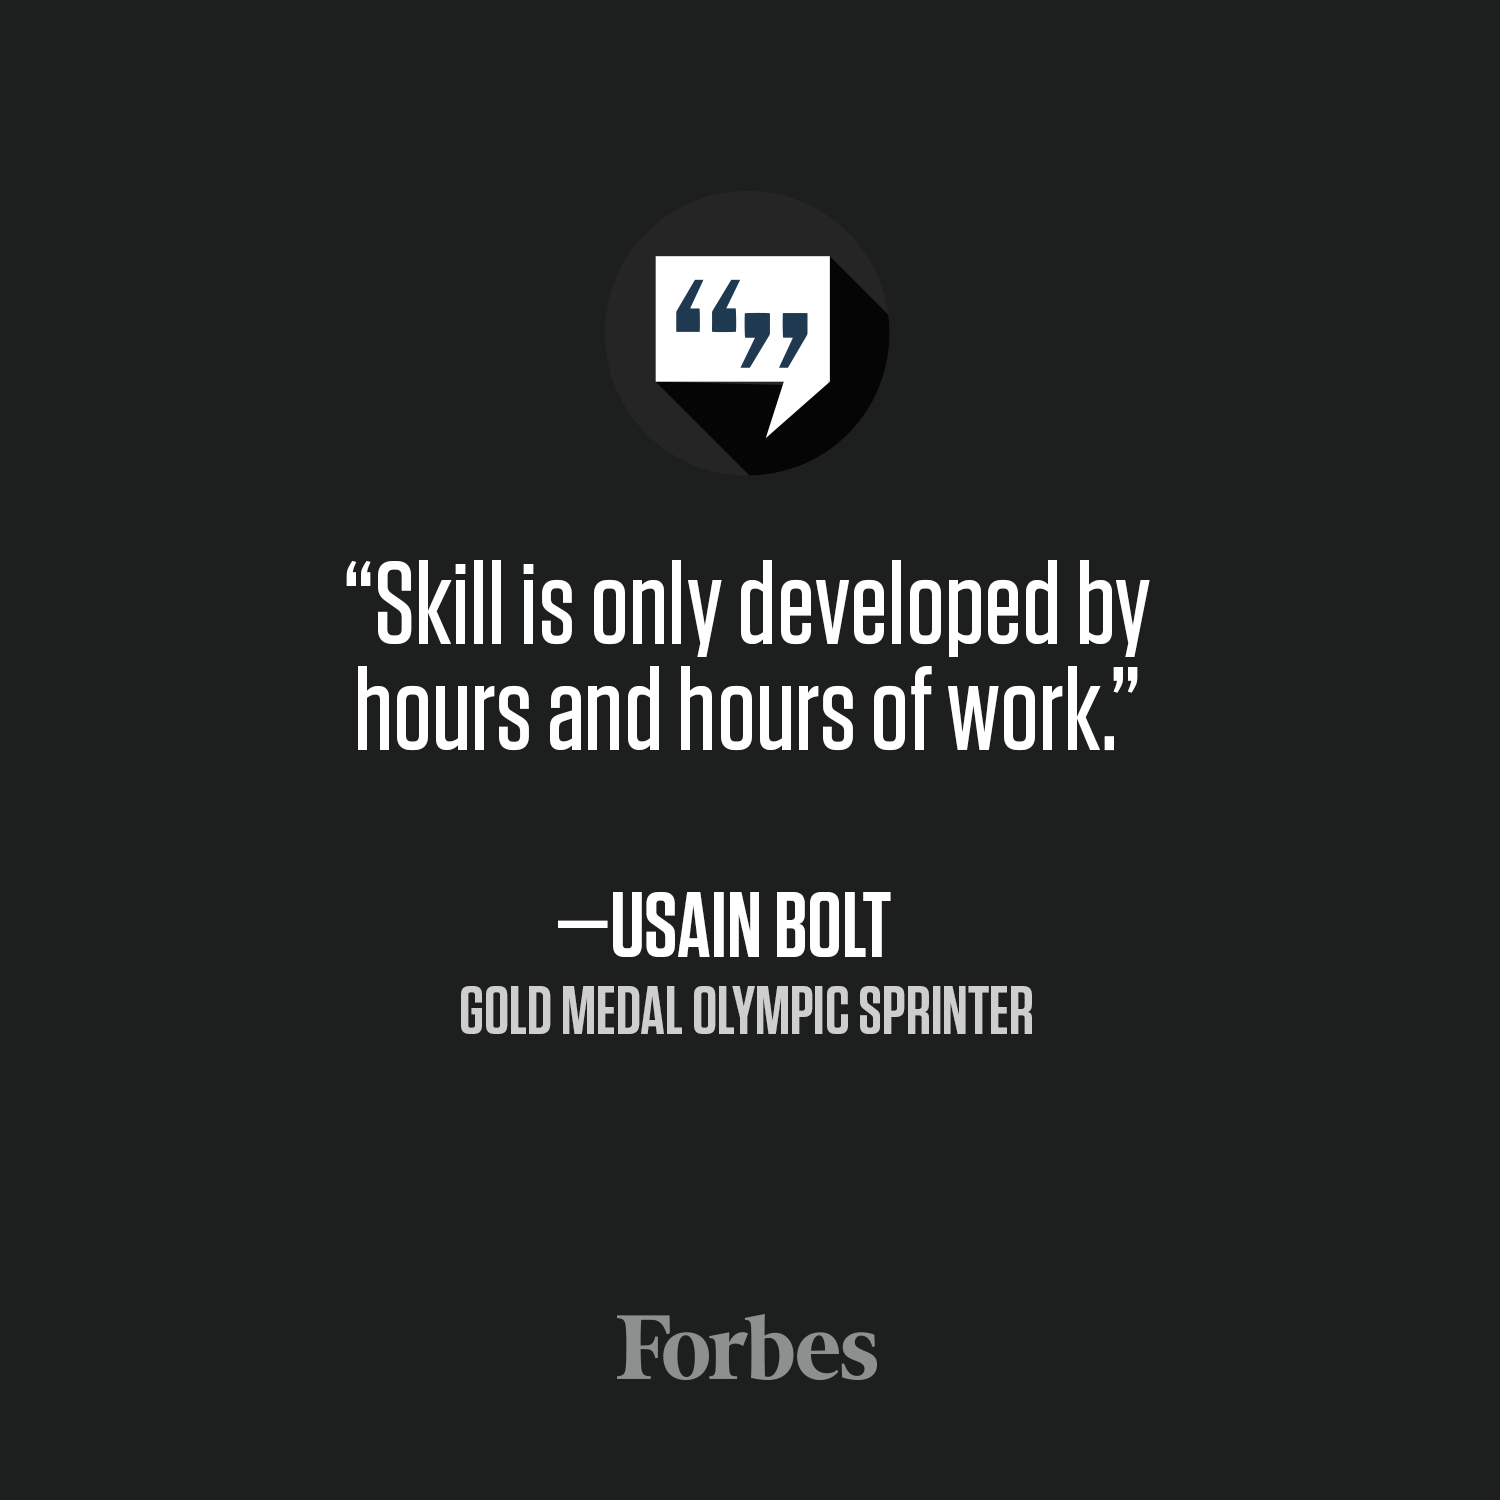 Skills don't develop overnight. It takes hard work and